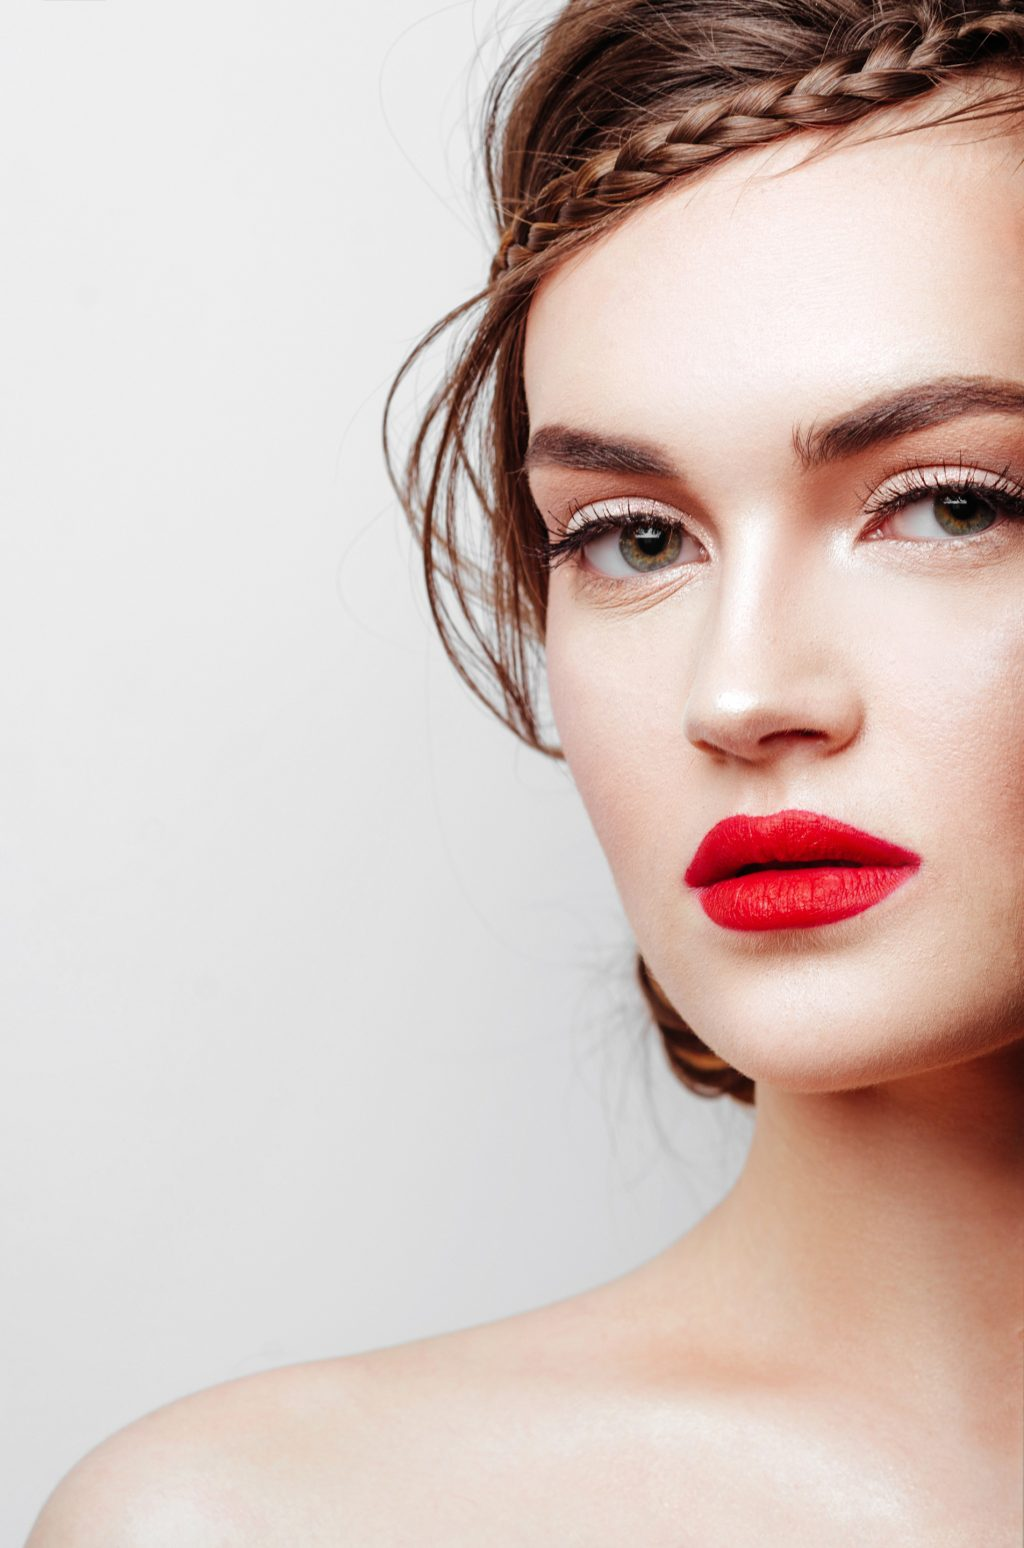 How to Master a Matte Red Lip in 3 Easy Steps